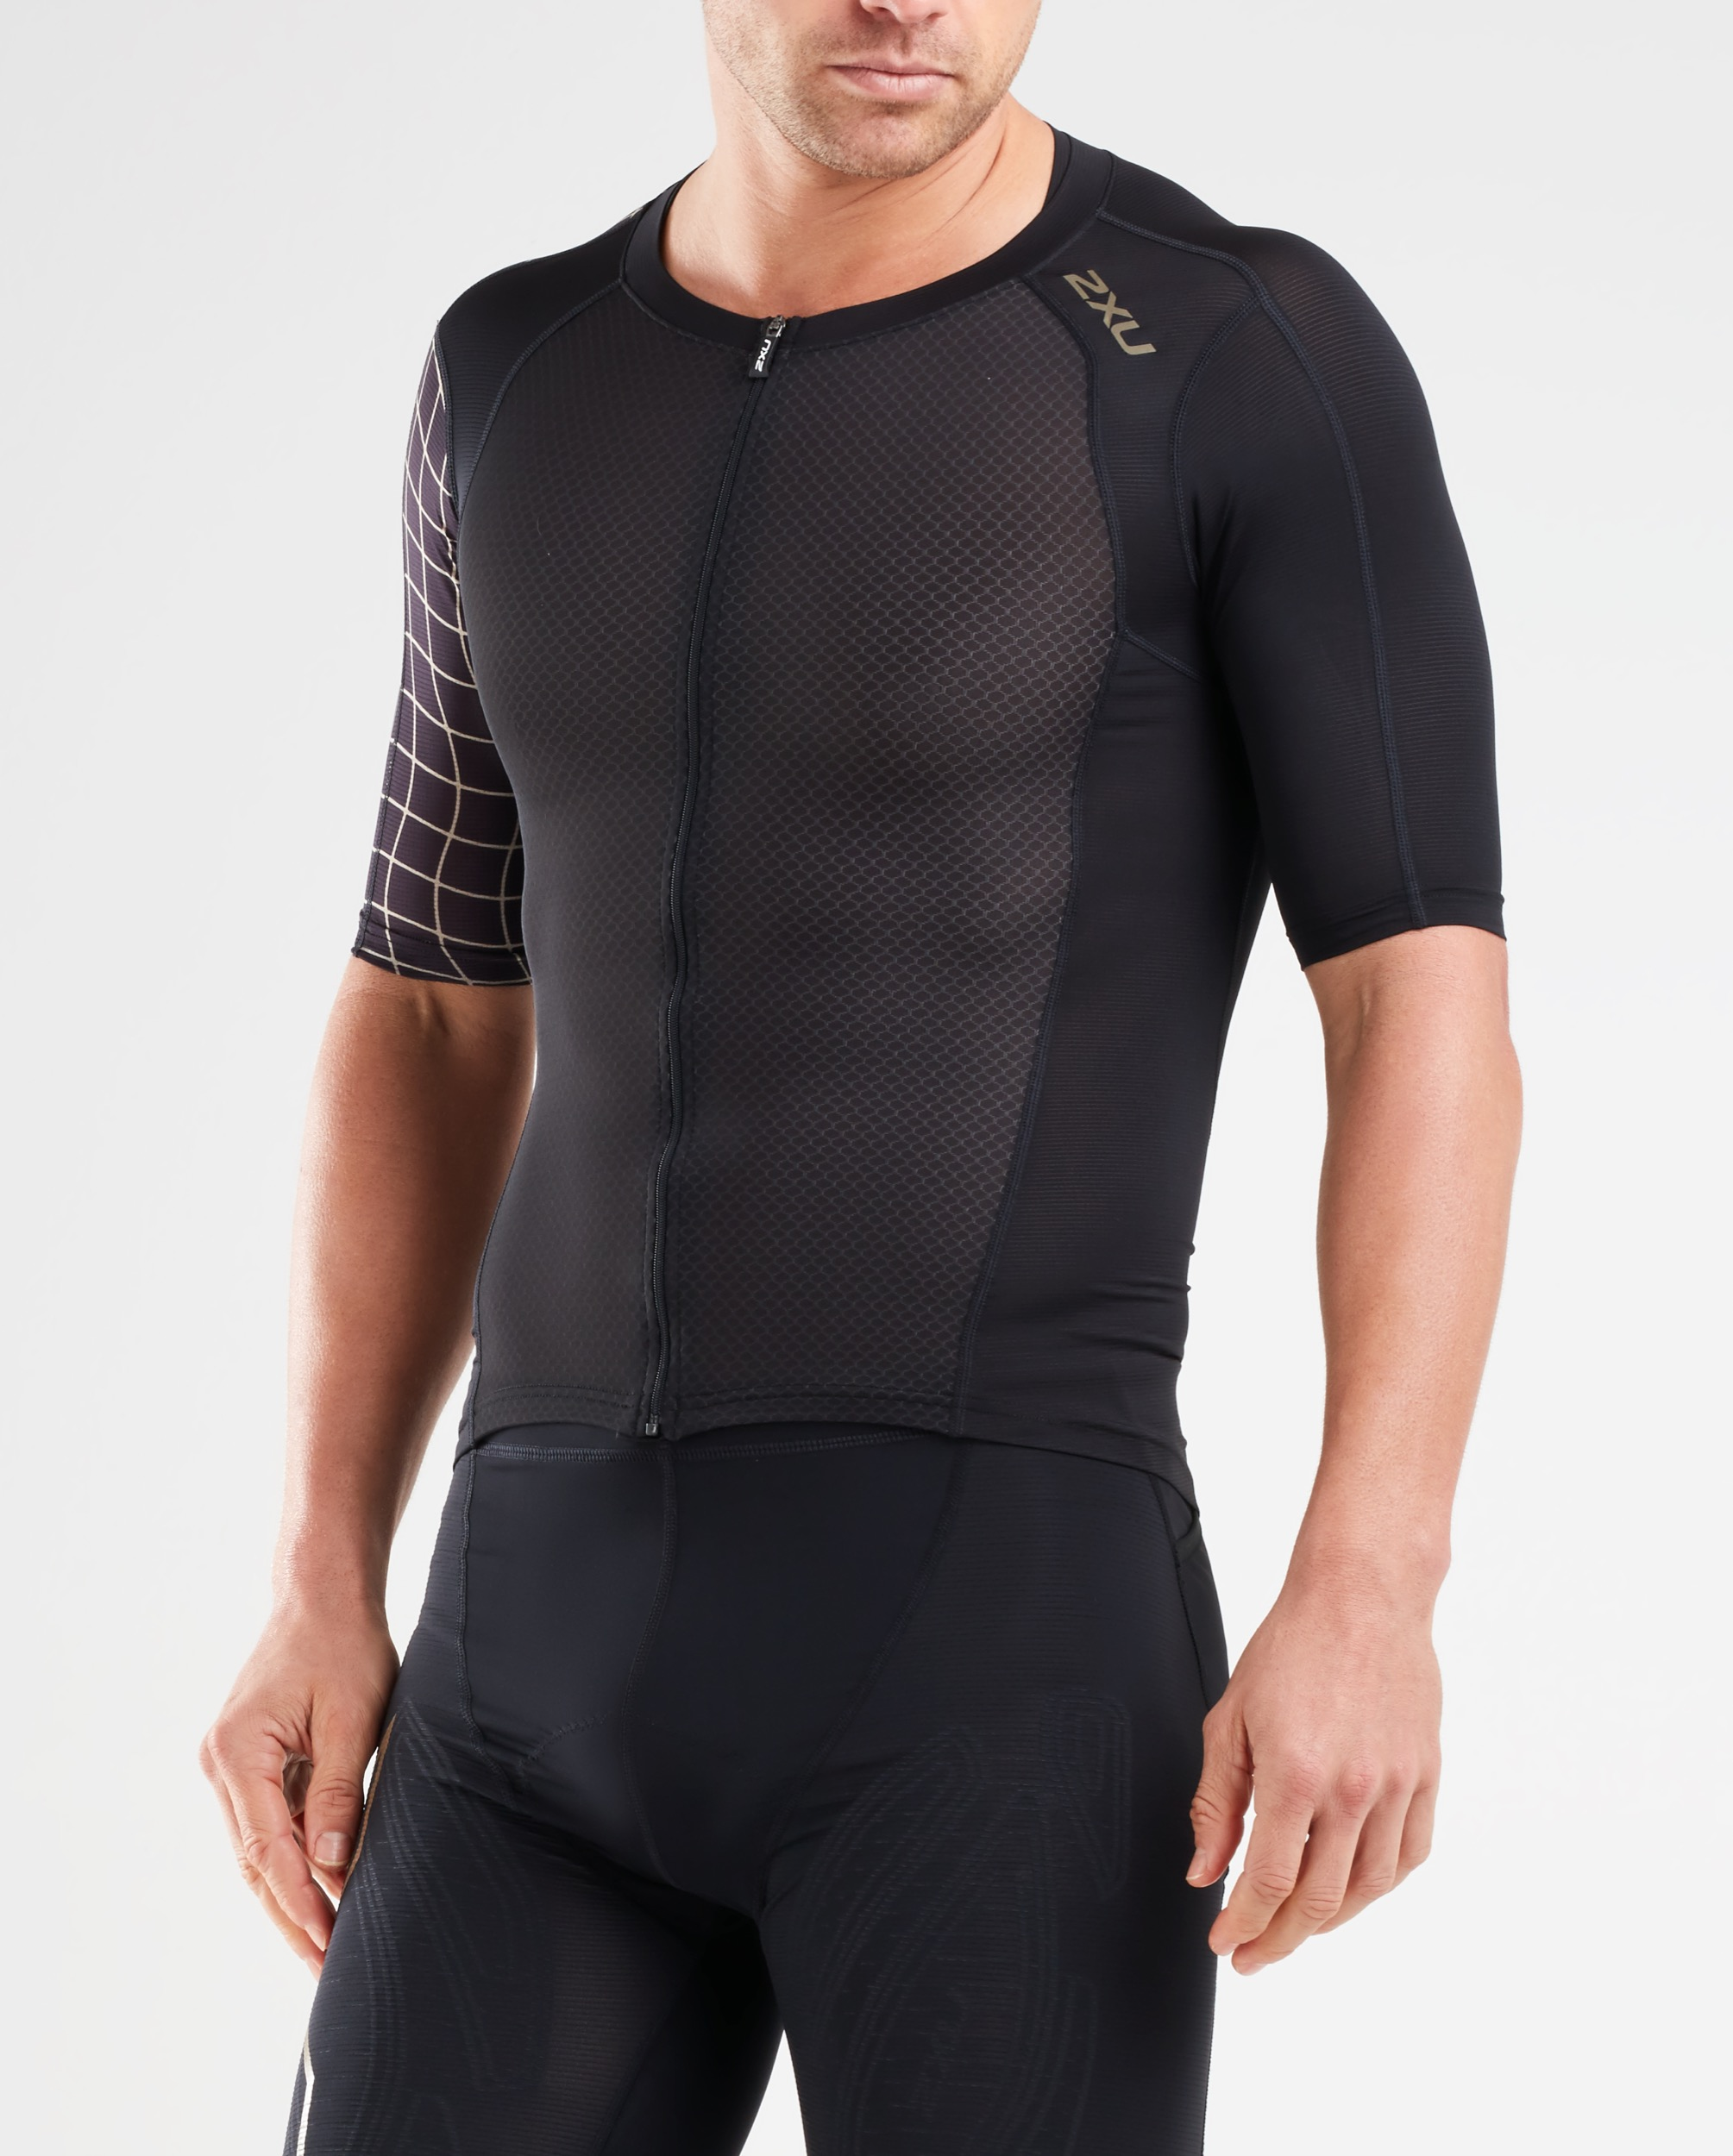 2xu - Compression Sleeved | compression clothes